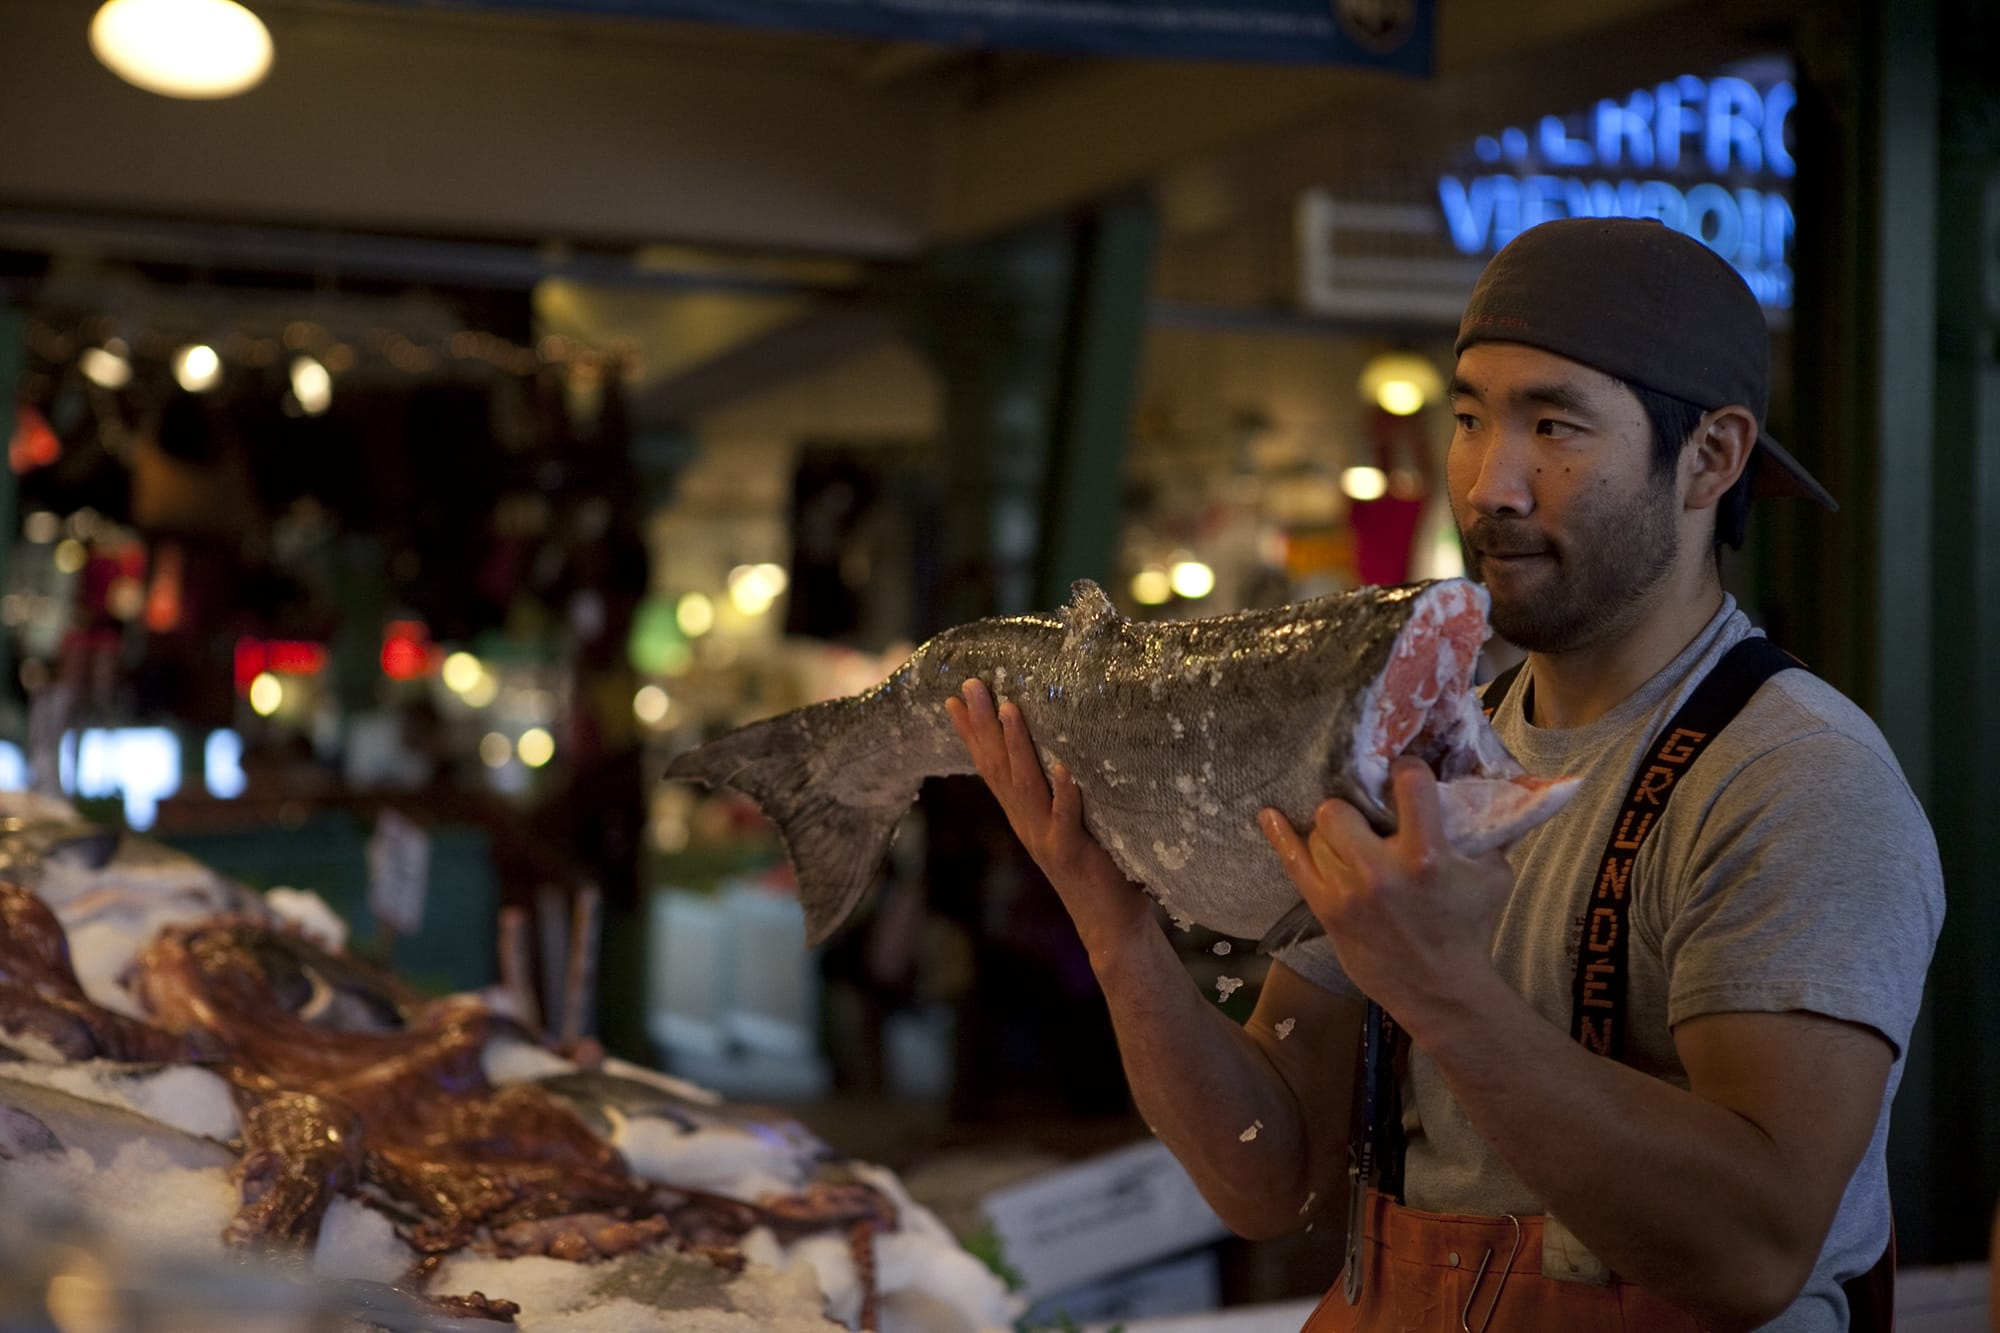 Fish tossing in Seattle's Pike Place Market